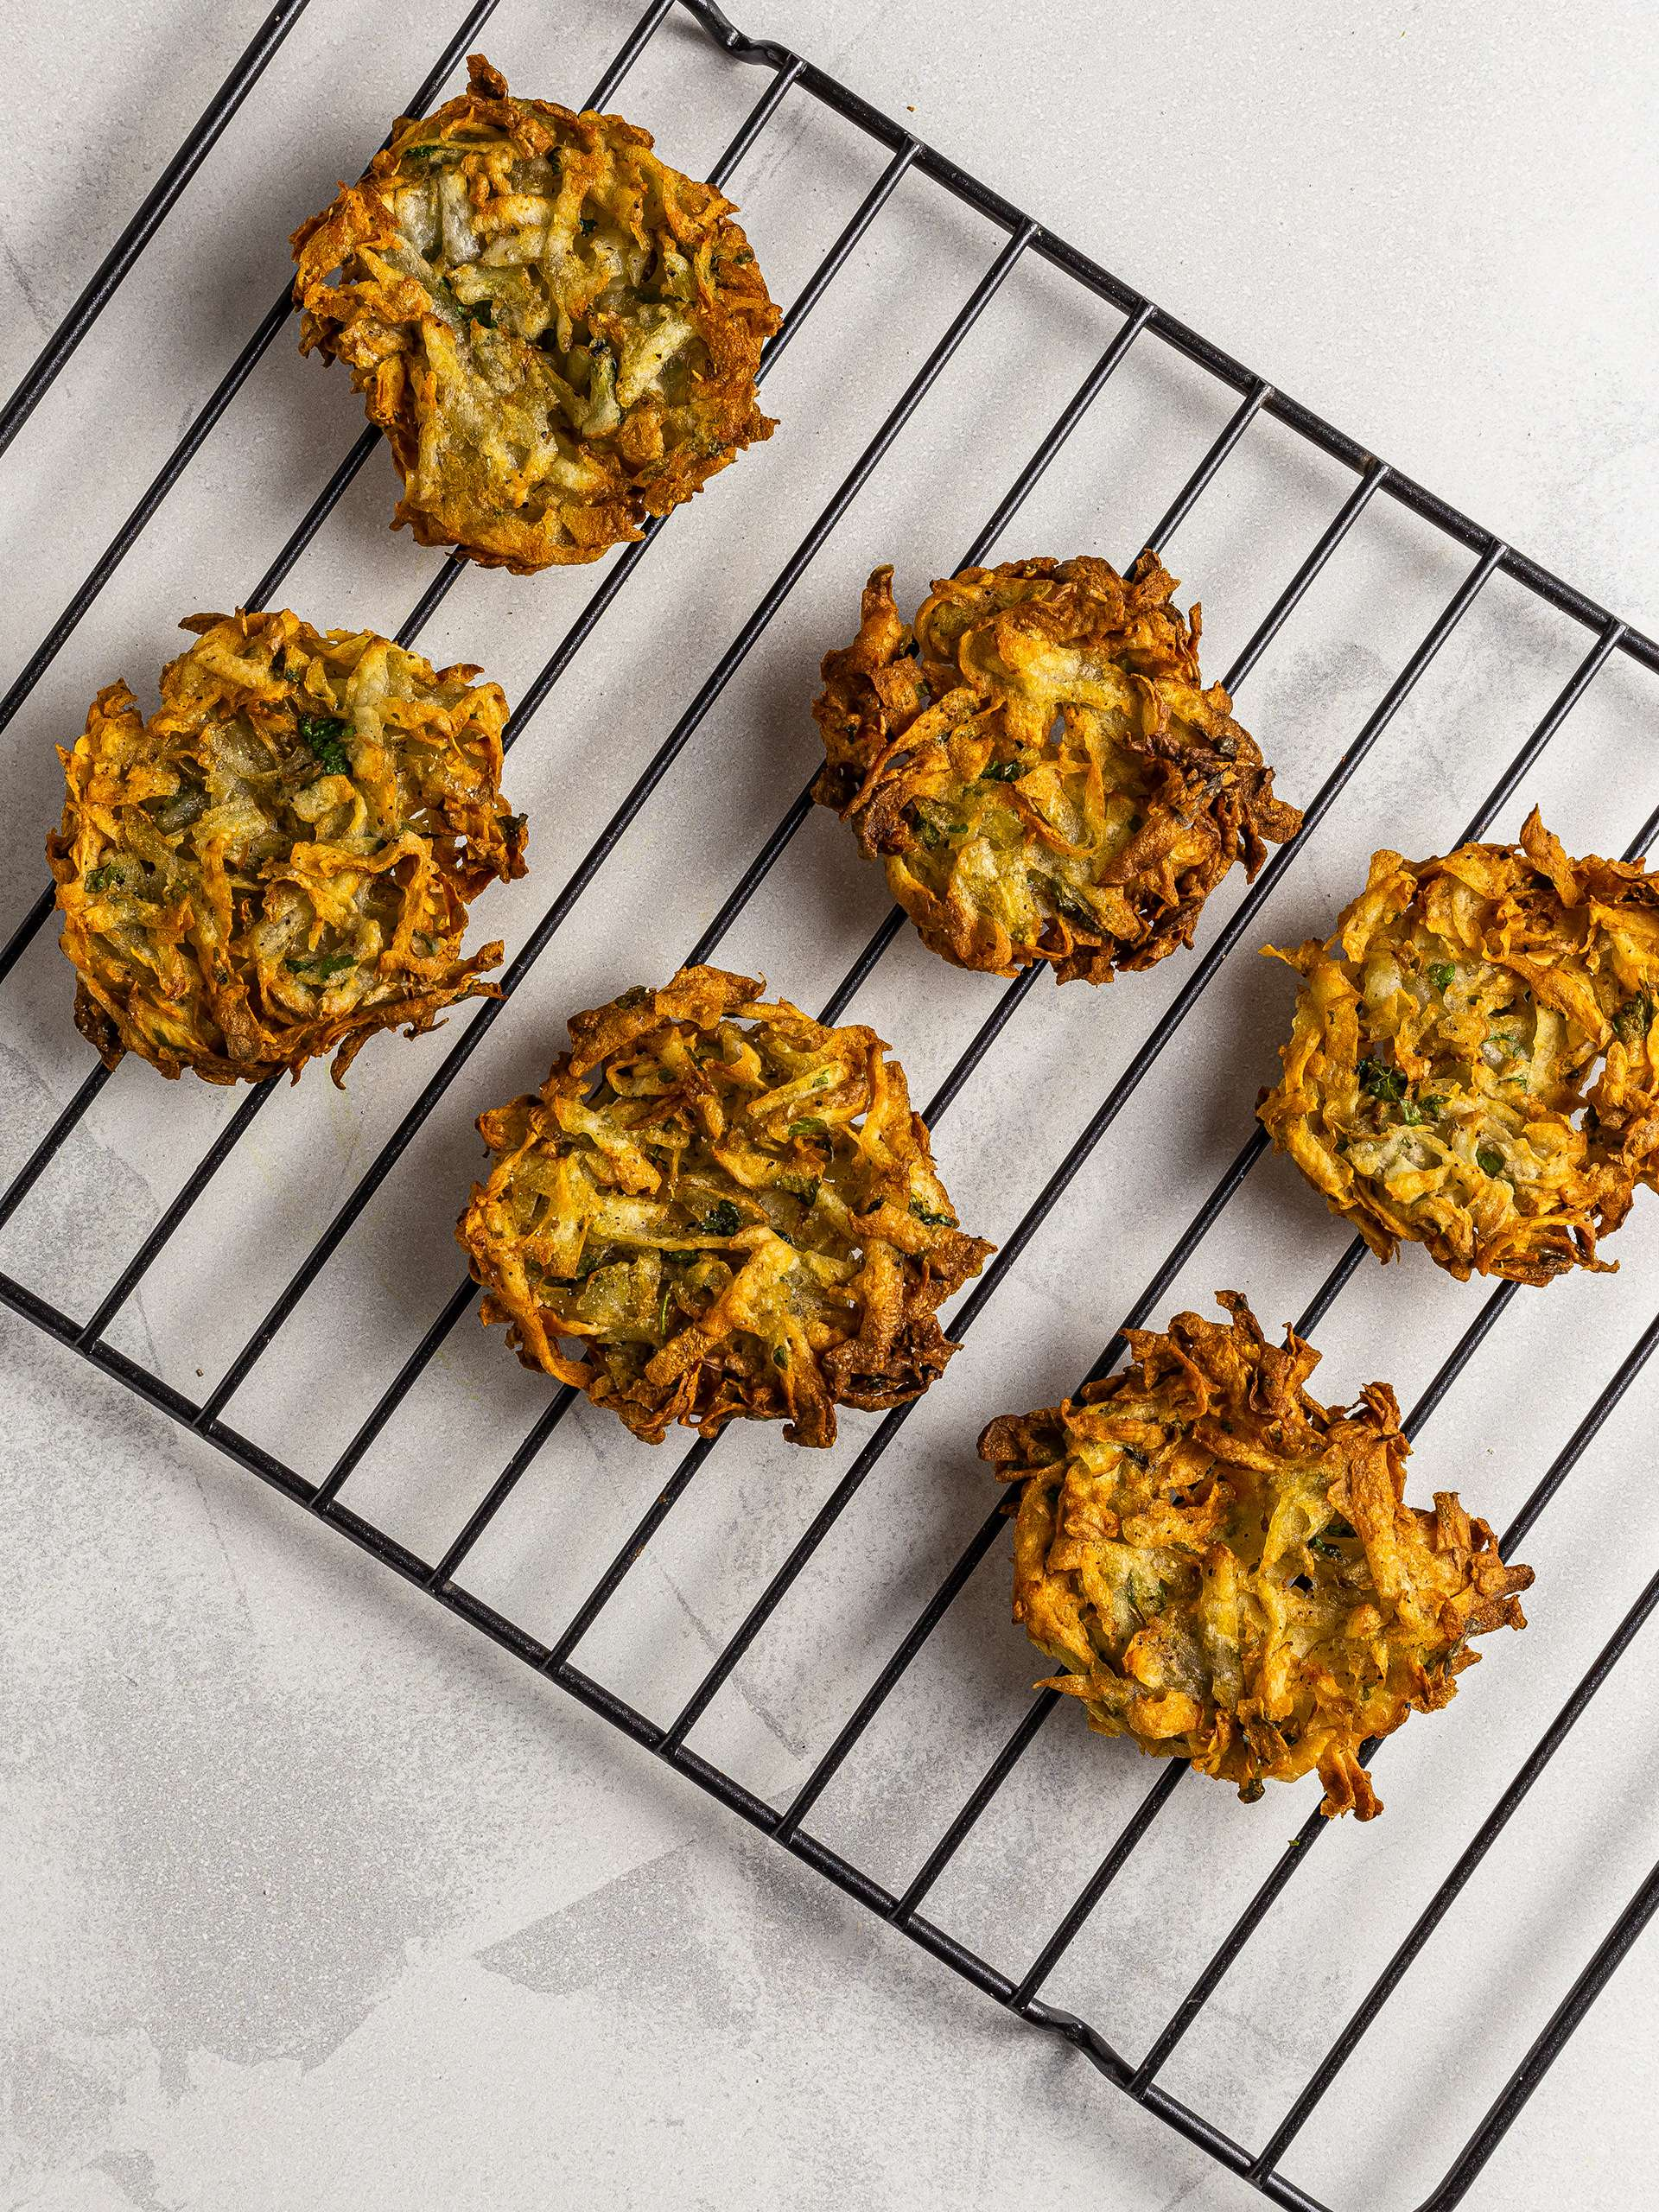 Crispy hash browns made with air fryer